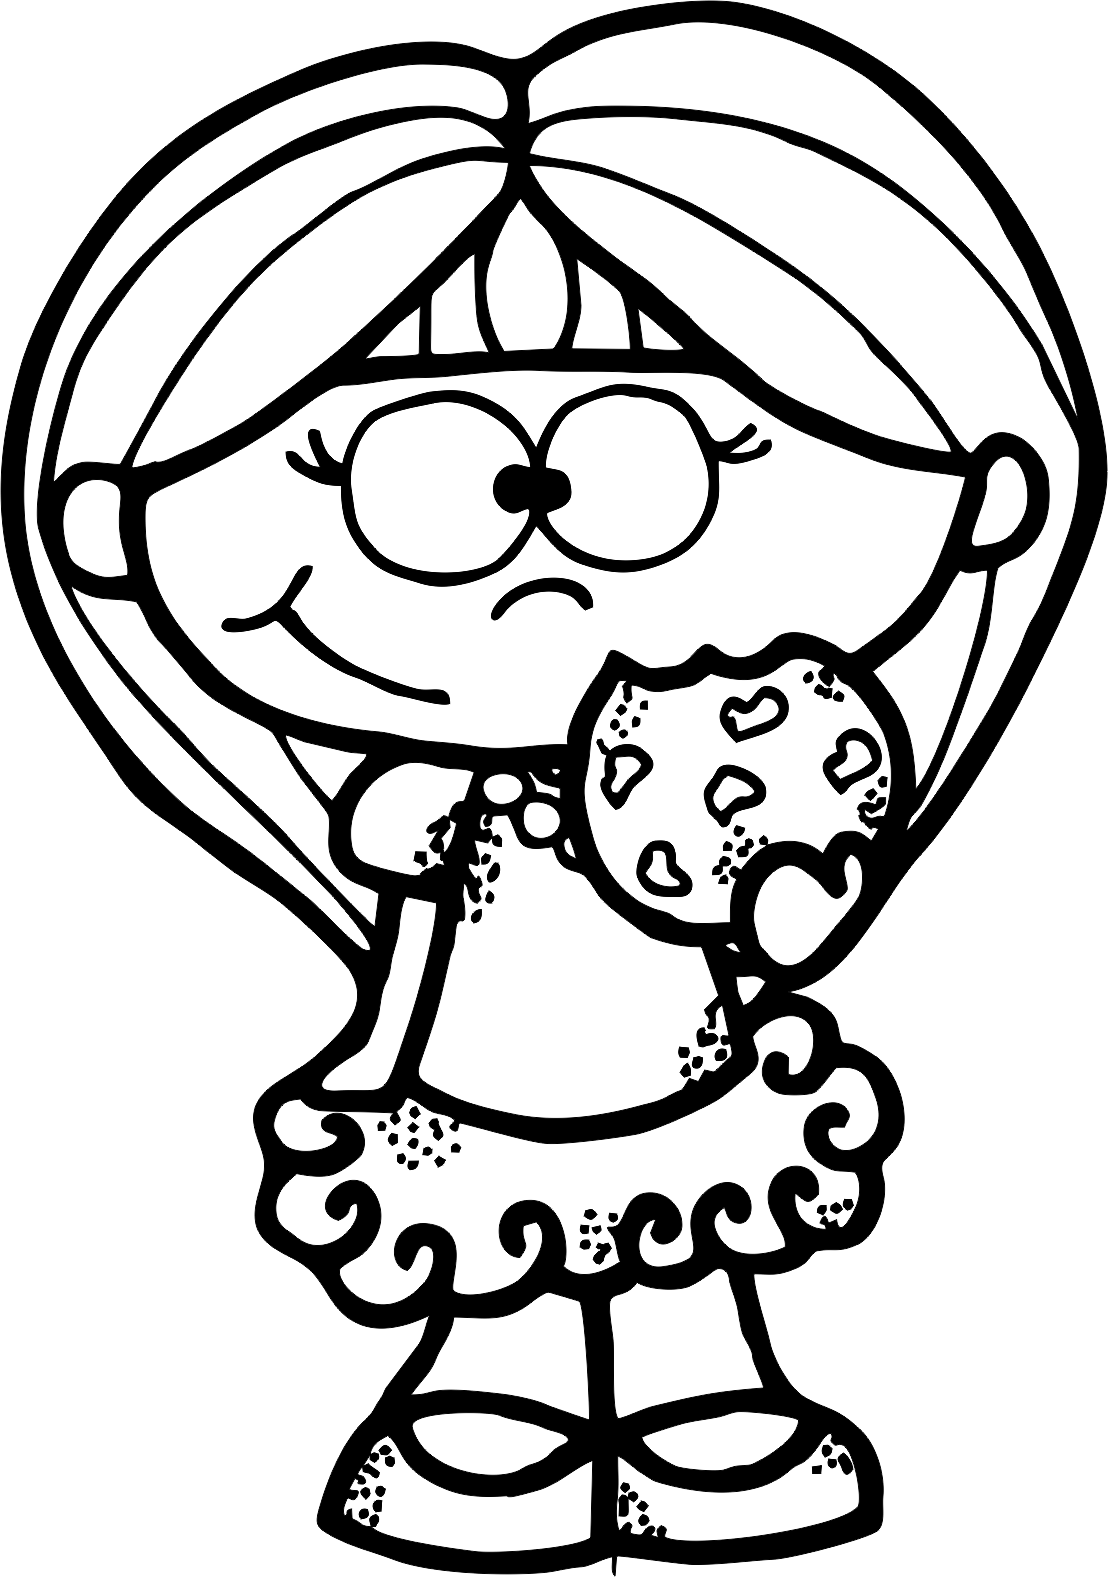 Court drawing cartoon. People coloring pages fresh